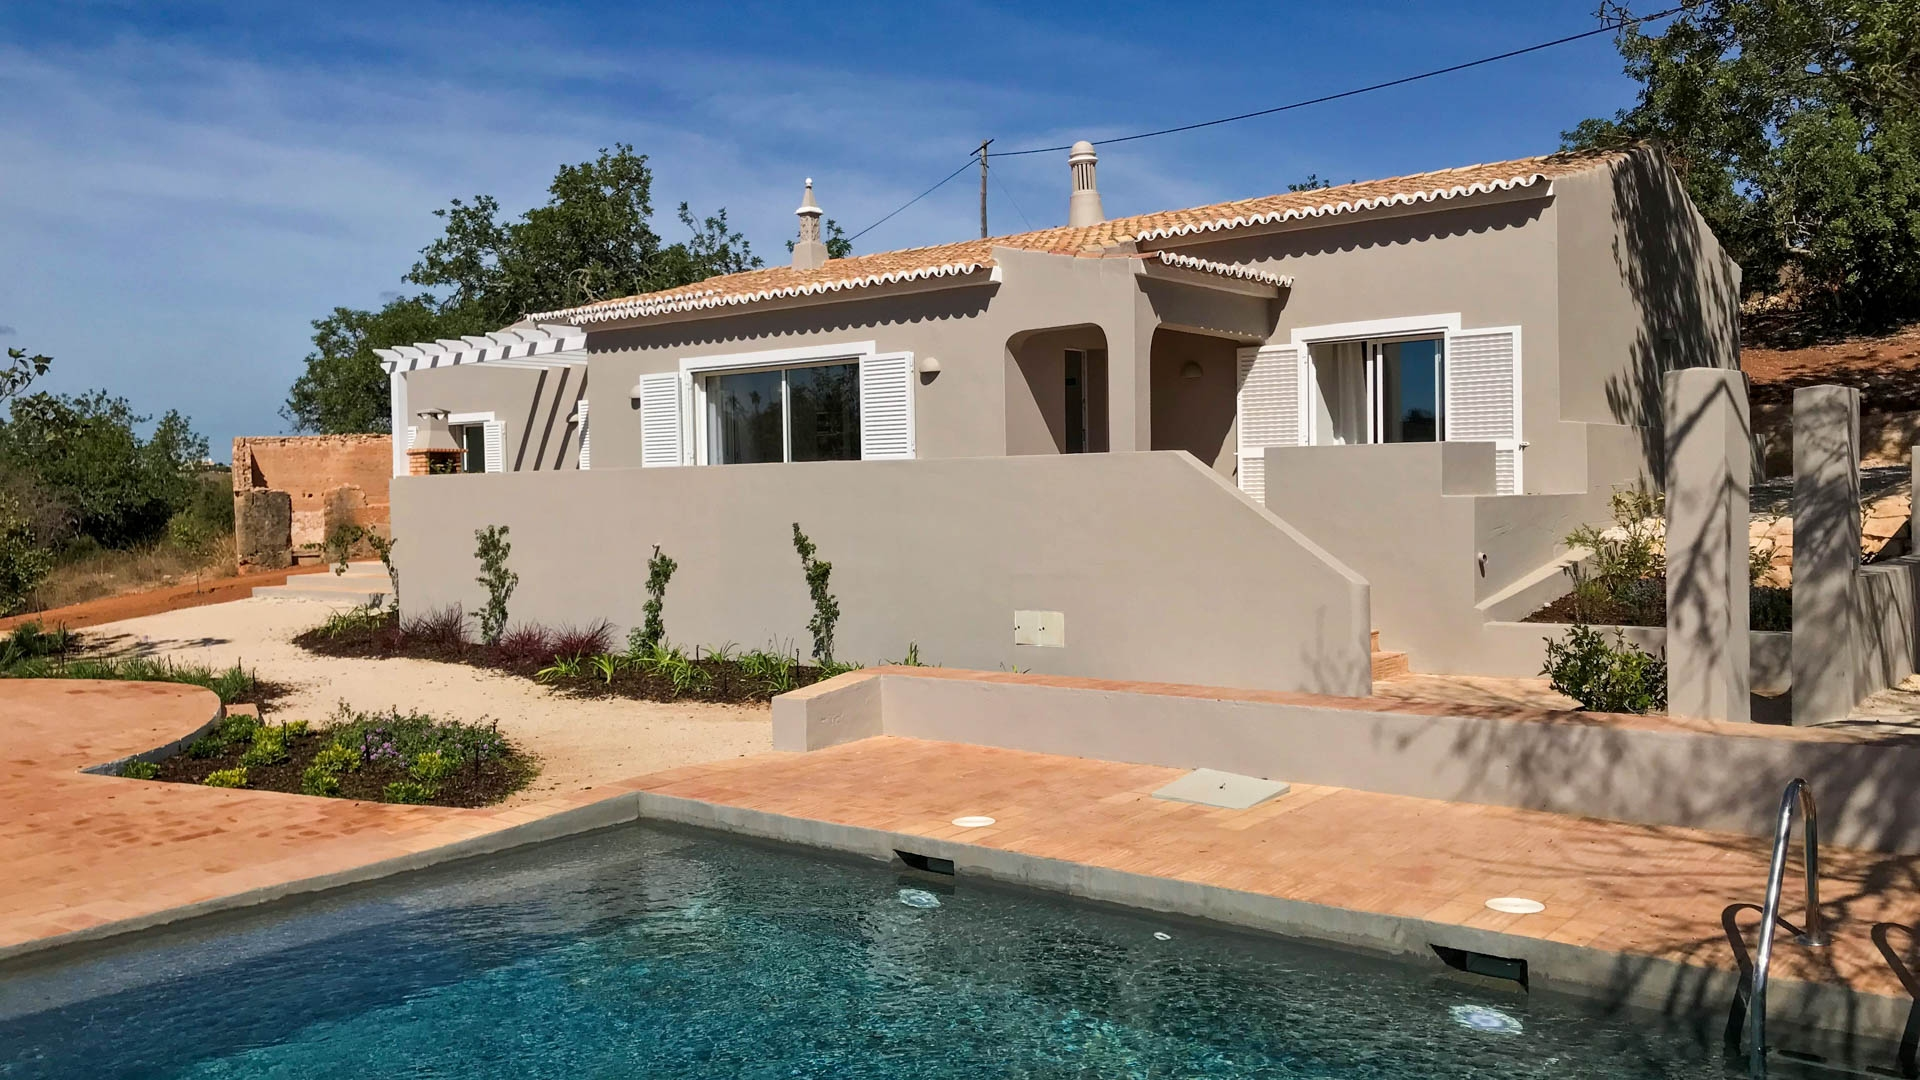 Modern 2+1 bedroom single storey cottage with pool on the golf course, near Carvoeiro | PCG1755 This newly built Portuguese style cottage is located near the Gramacho Golf Course and just a stone's throw from the idyllic fishing village of Ferragudo with restaurants, cafes and shops.